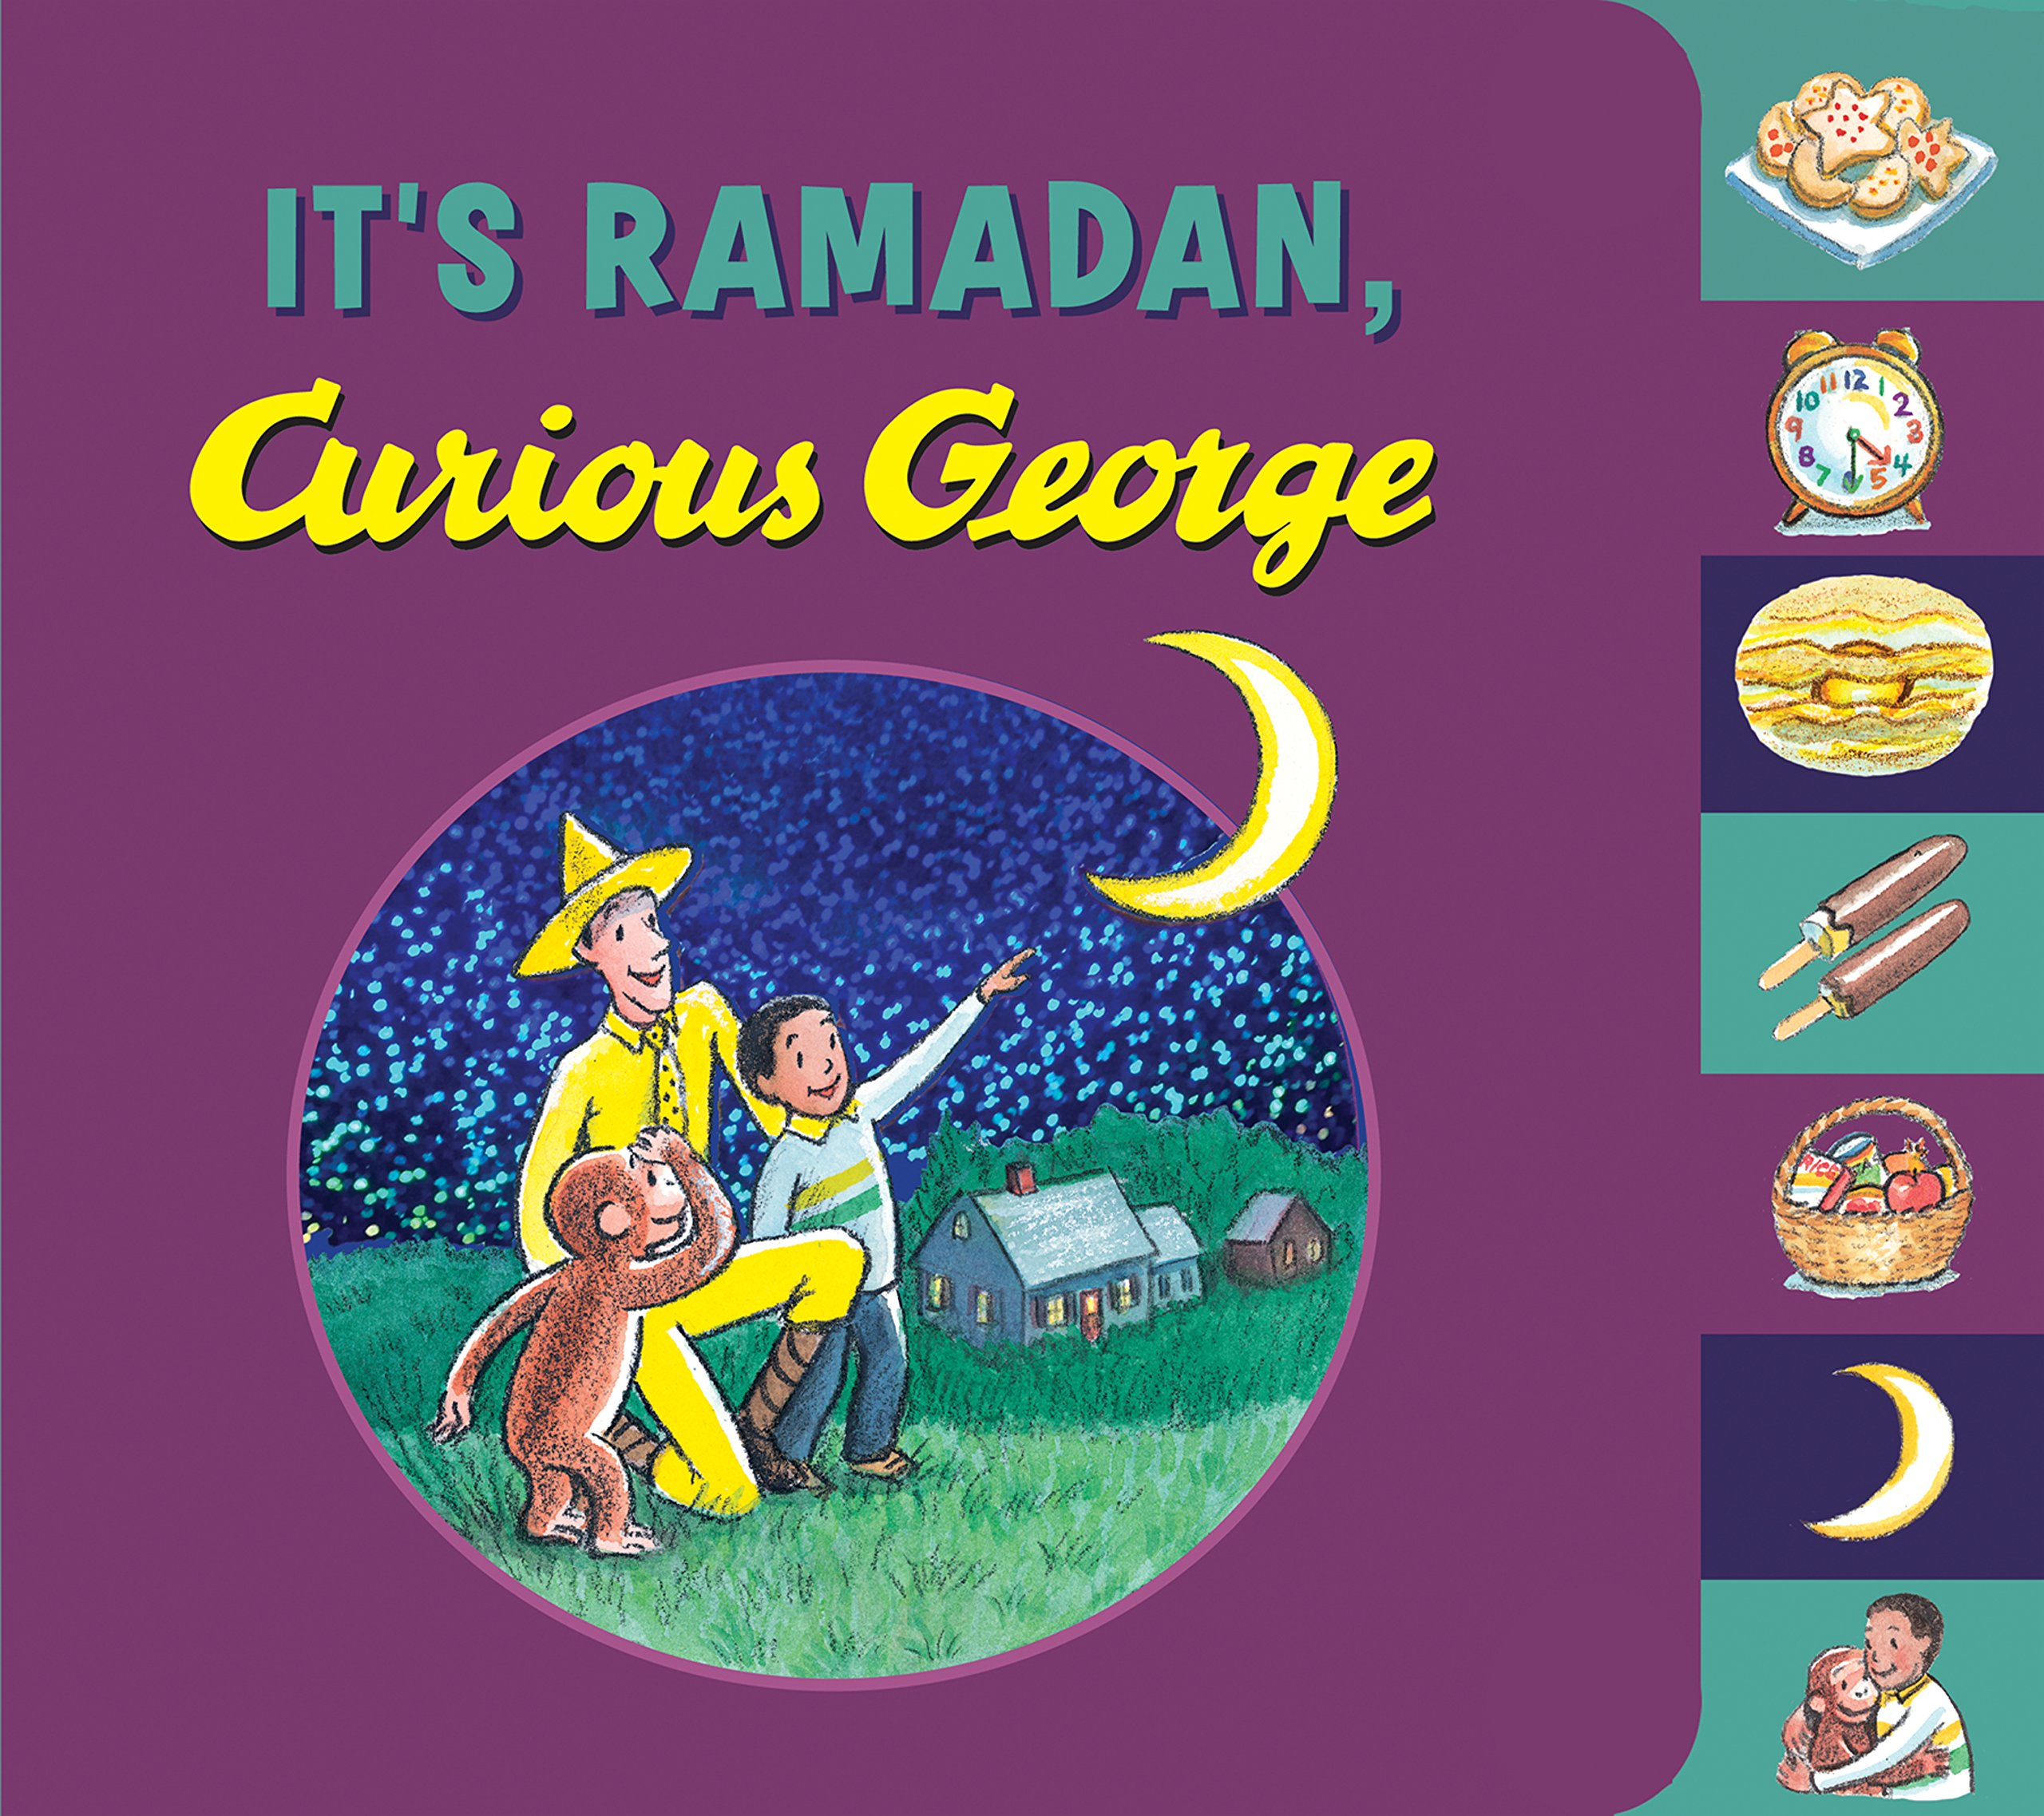 Curious George celebrates Muslim holidays